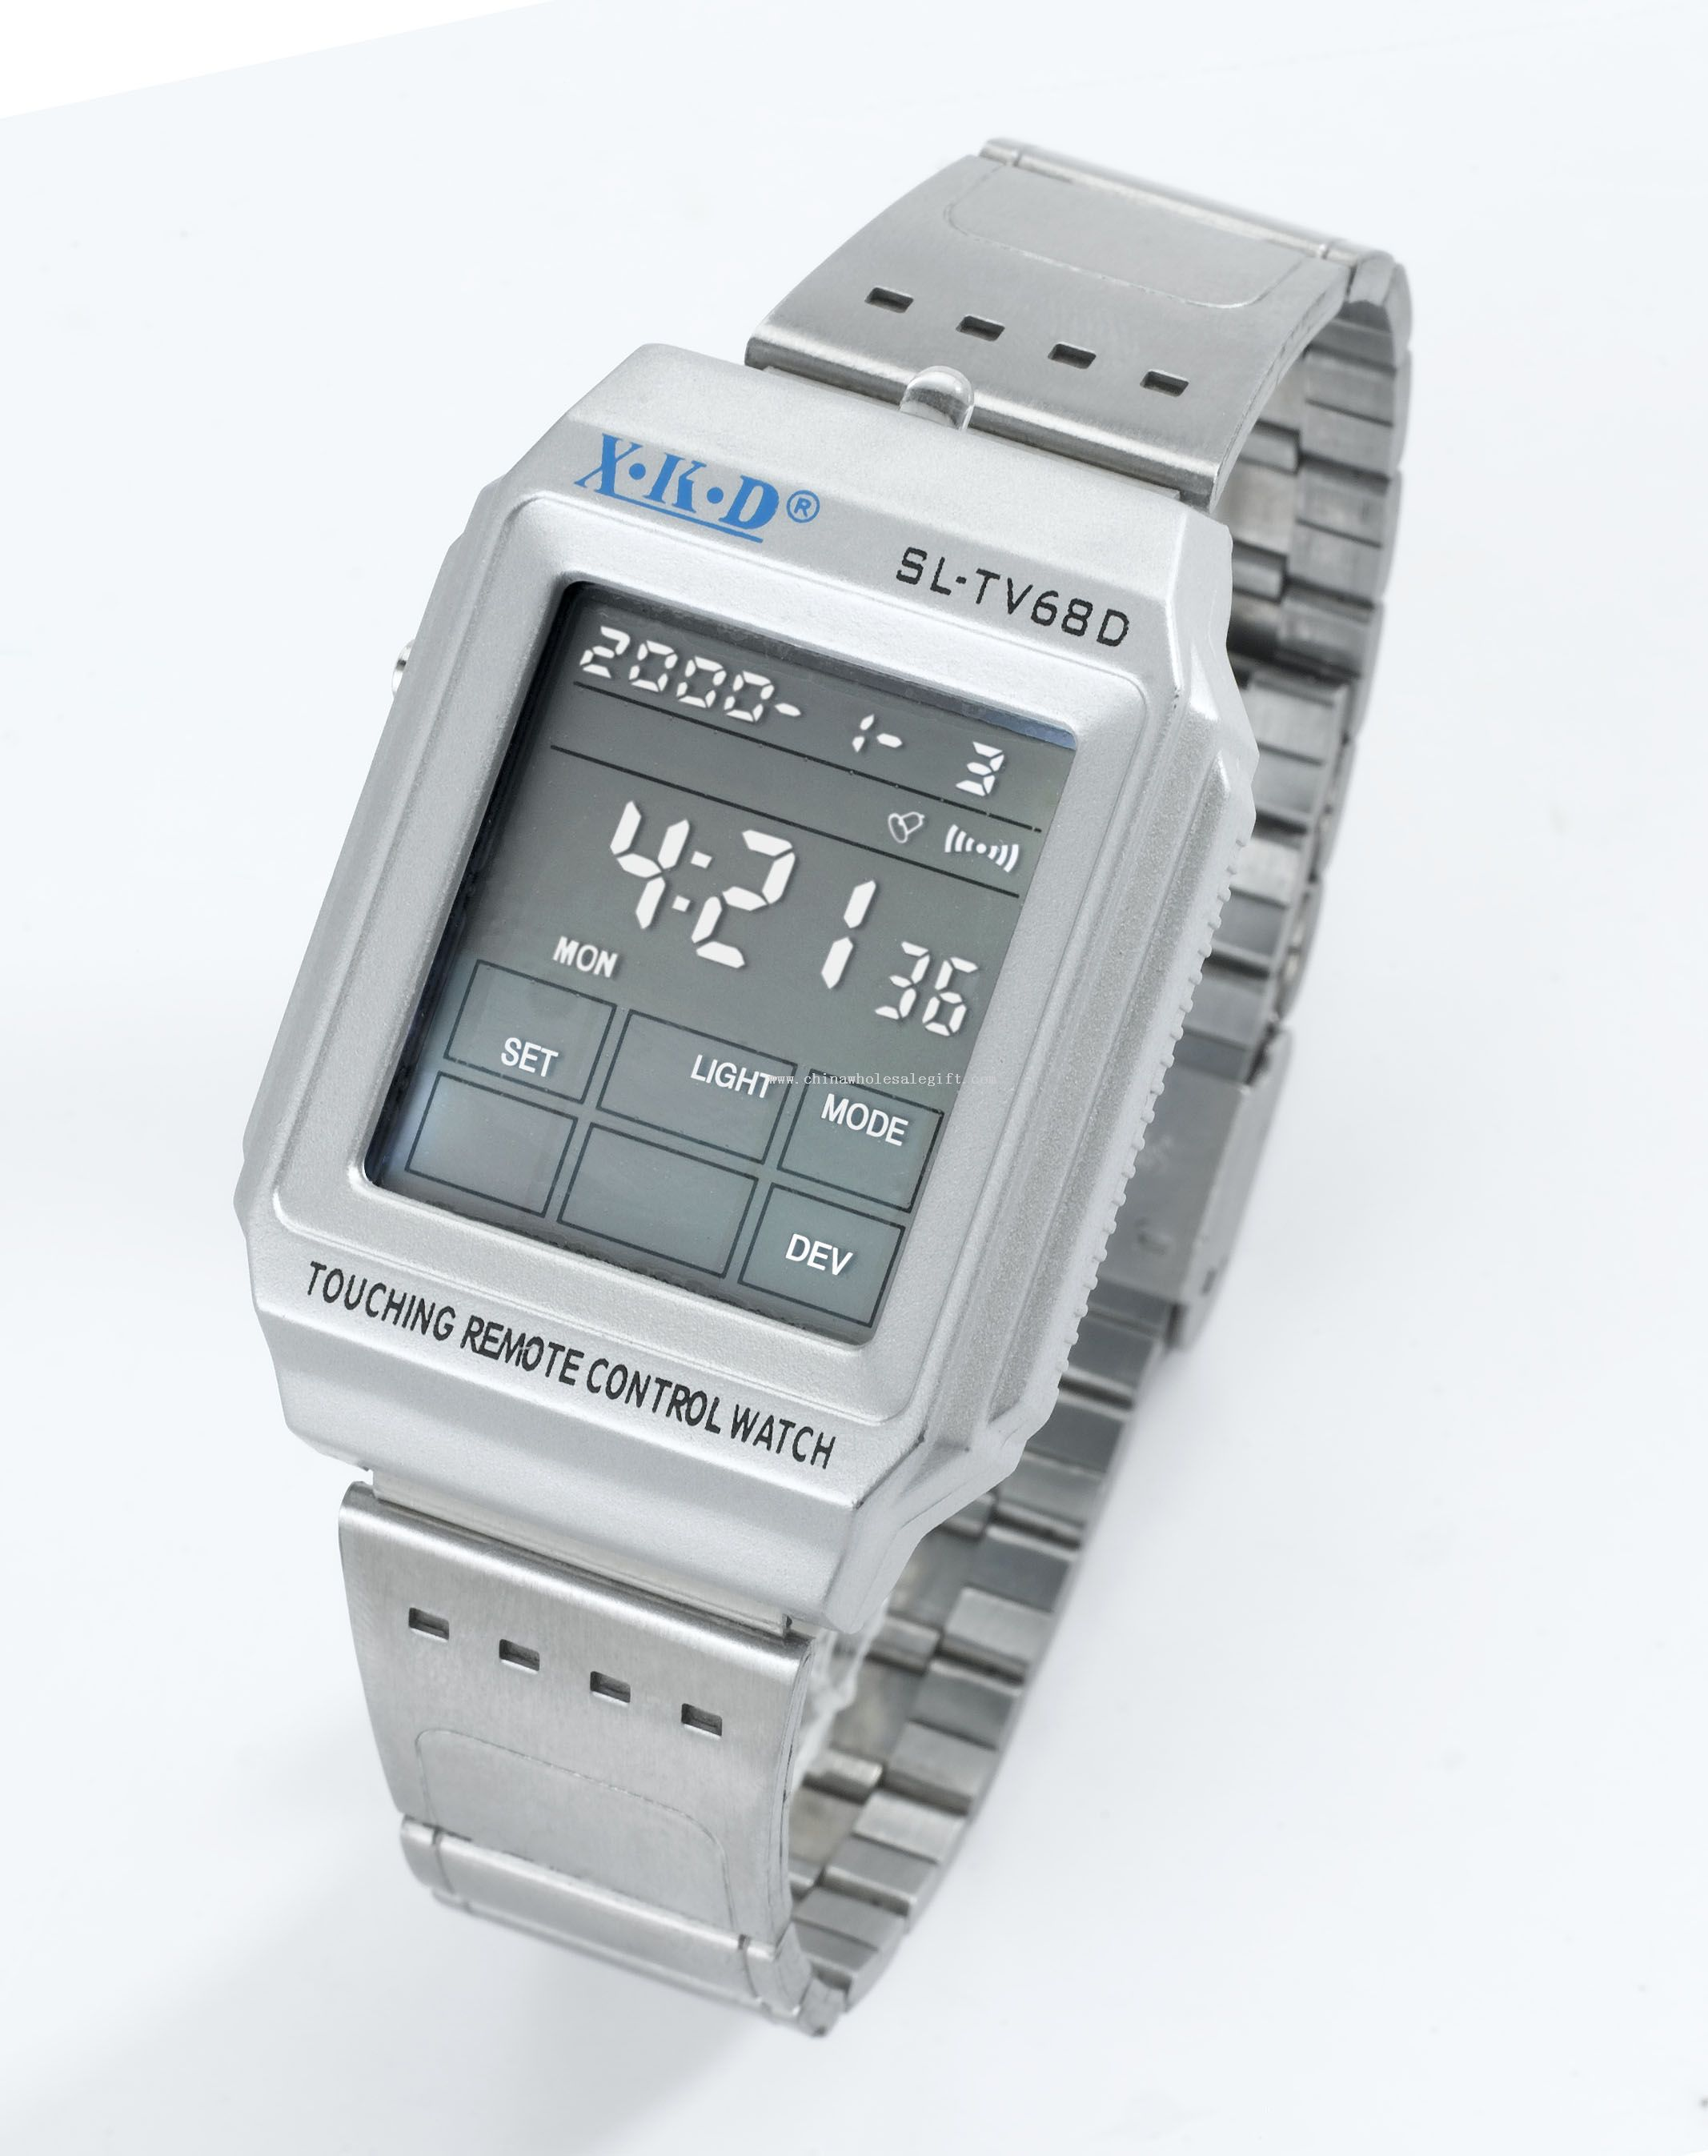 Touch Panel TV and VCD Remote Control Watch